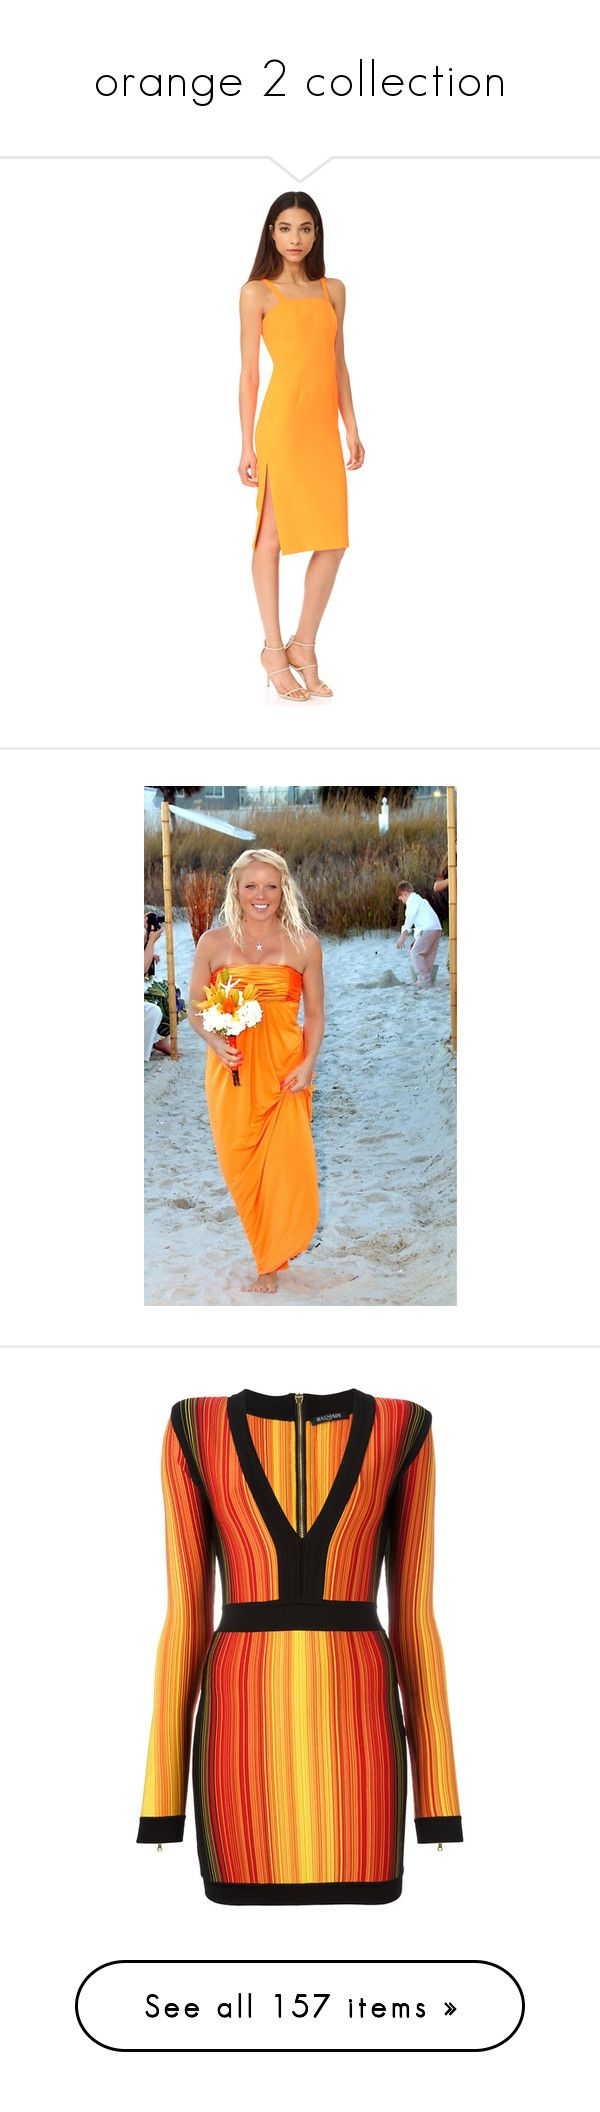 """""""orange 2 collection"""" by mimmiandkinkistatementjewelry ❤ liked on Polyvore featuring dresses, fluorescent orange, lined dress, neon yellow dress, sheath dresses, lining dress, orange dress, beachy dresses, blue beach dress and bridesmaid dresses"""